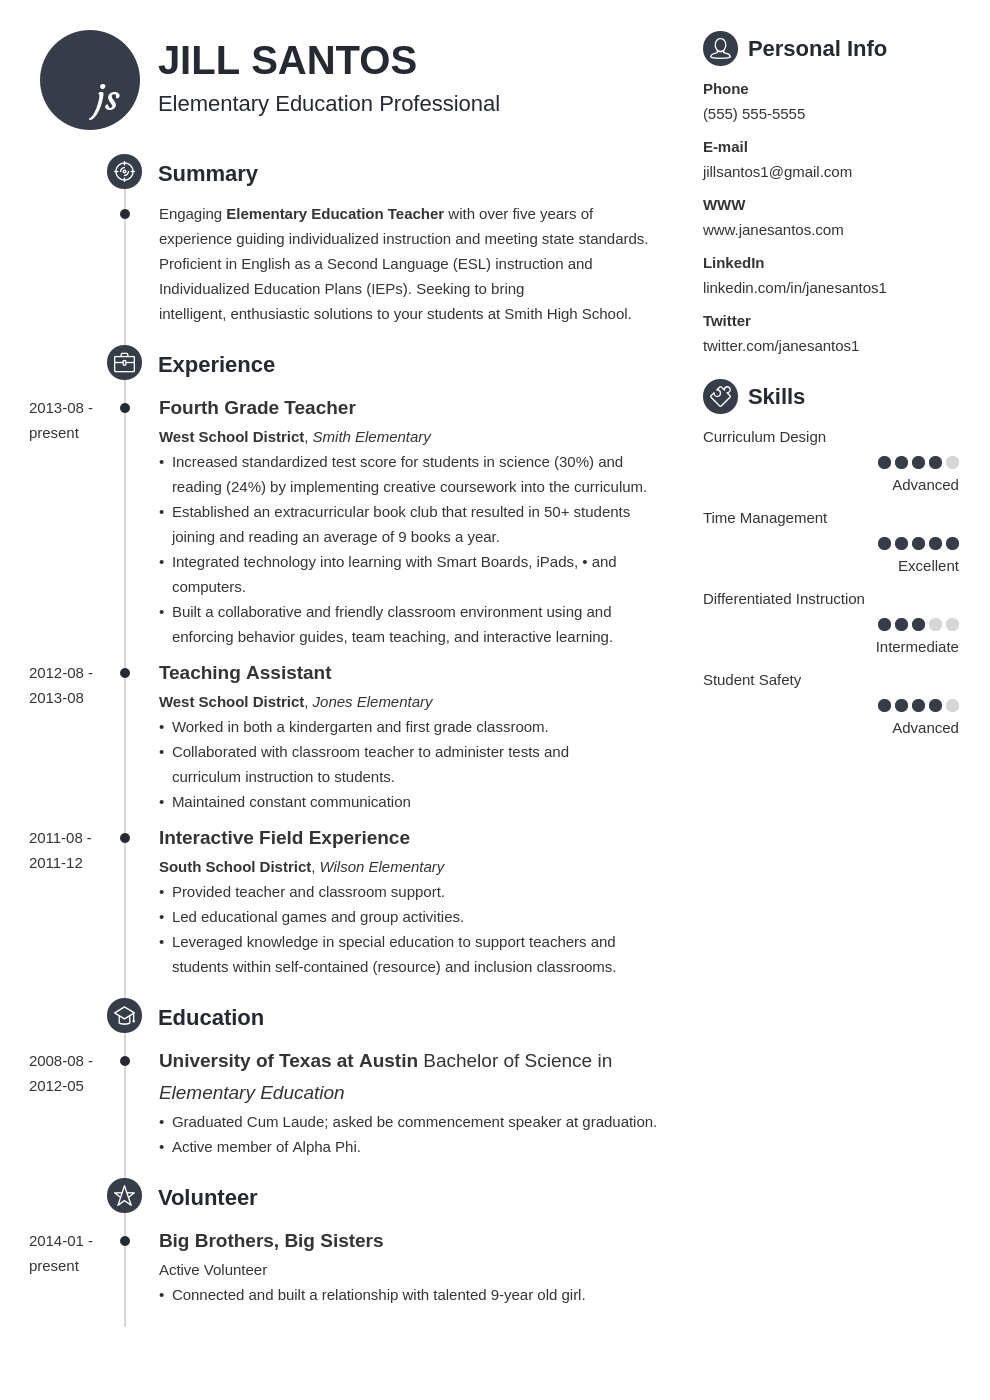 Teacher Resume Template & Guide (20+ Examples for Teaching Jobs)